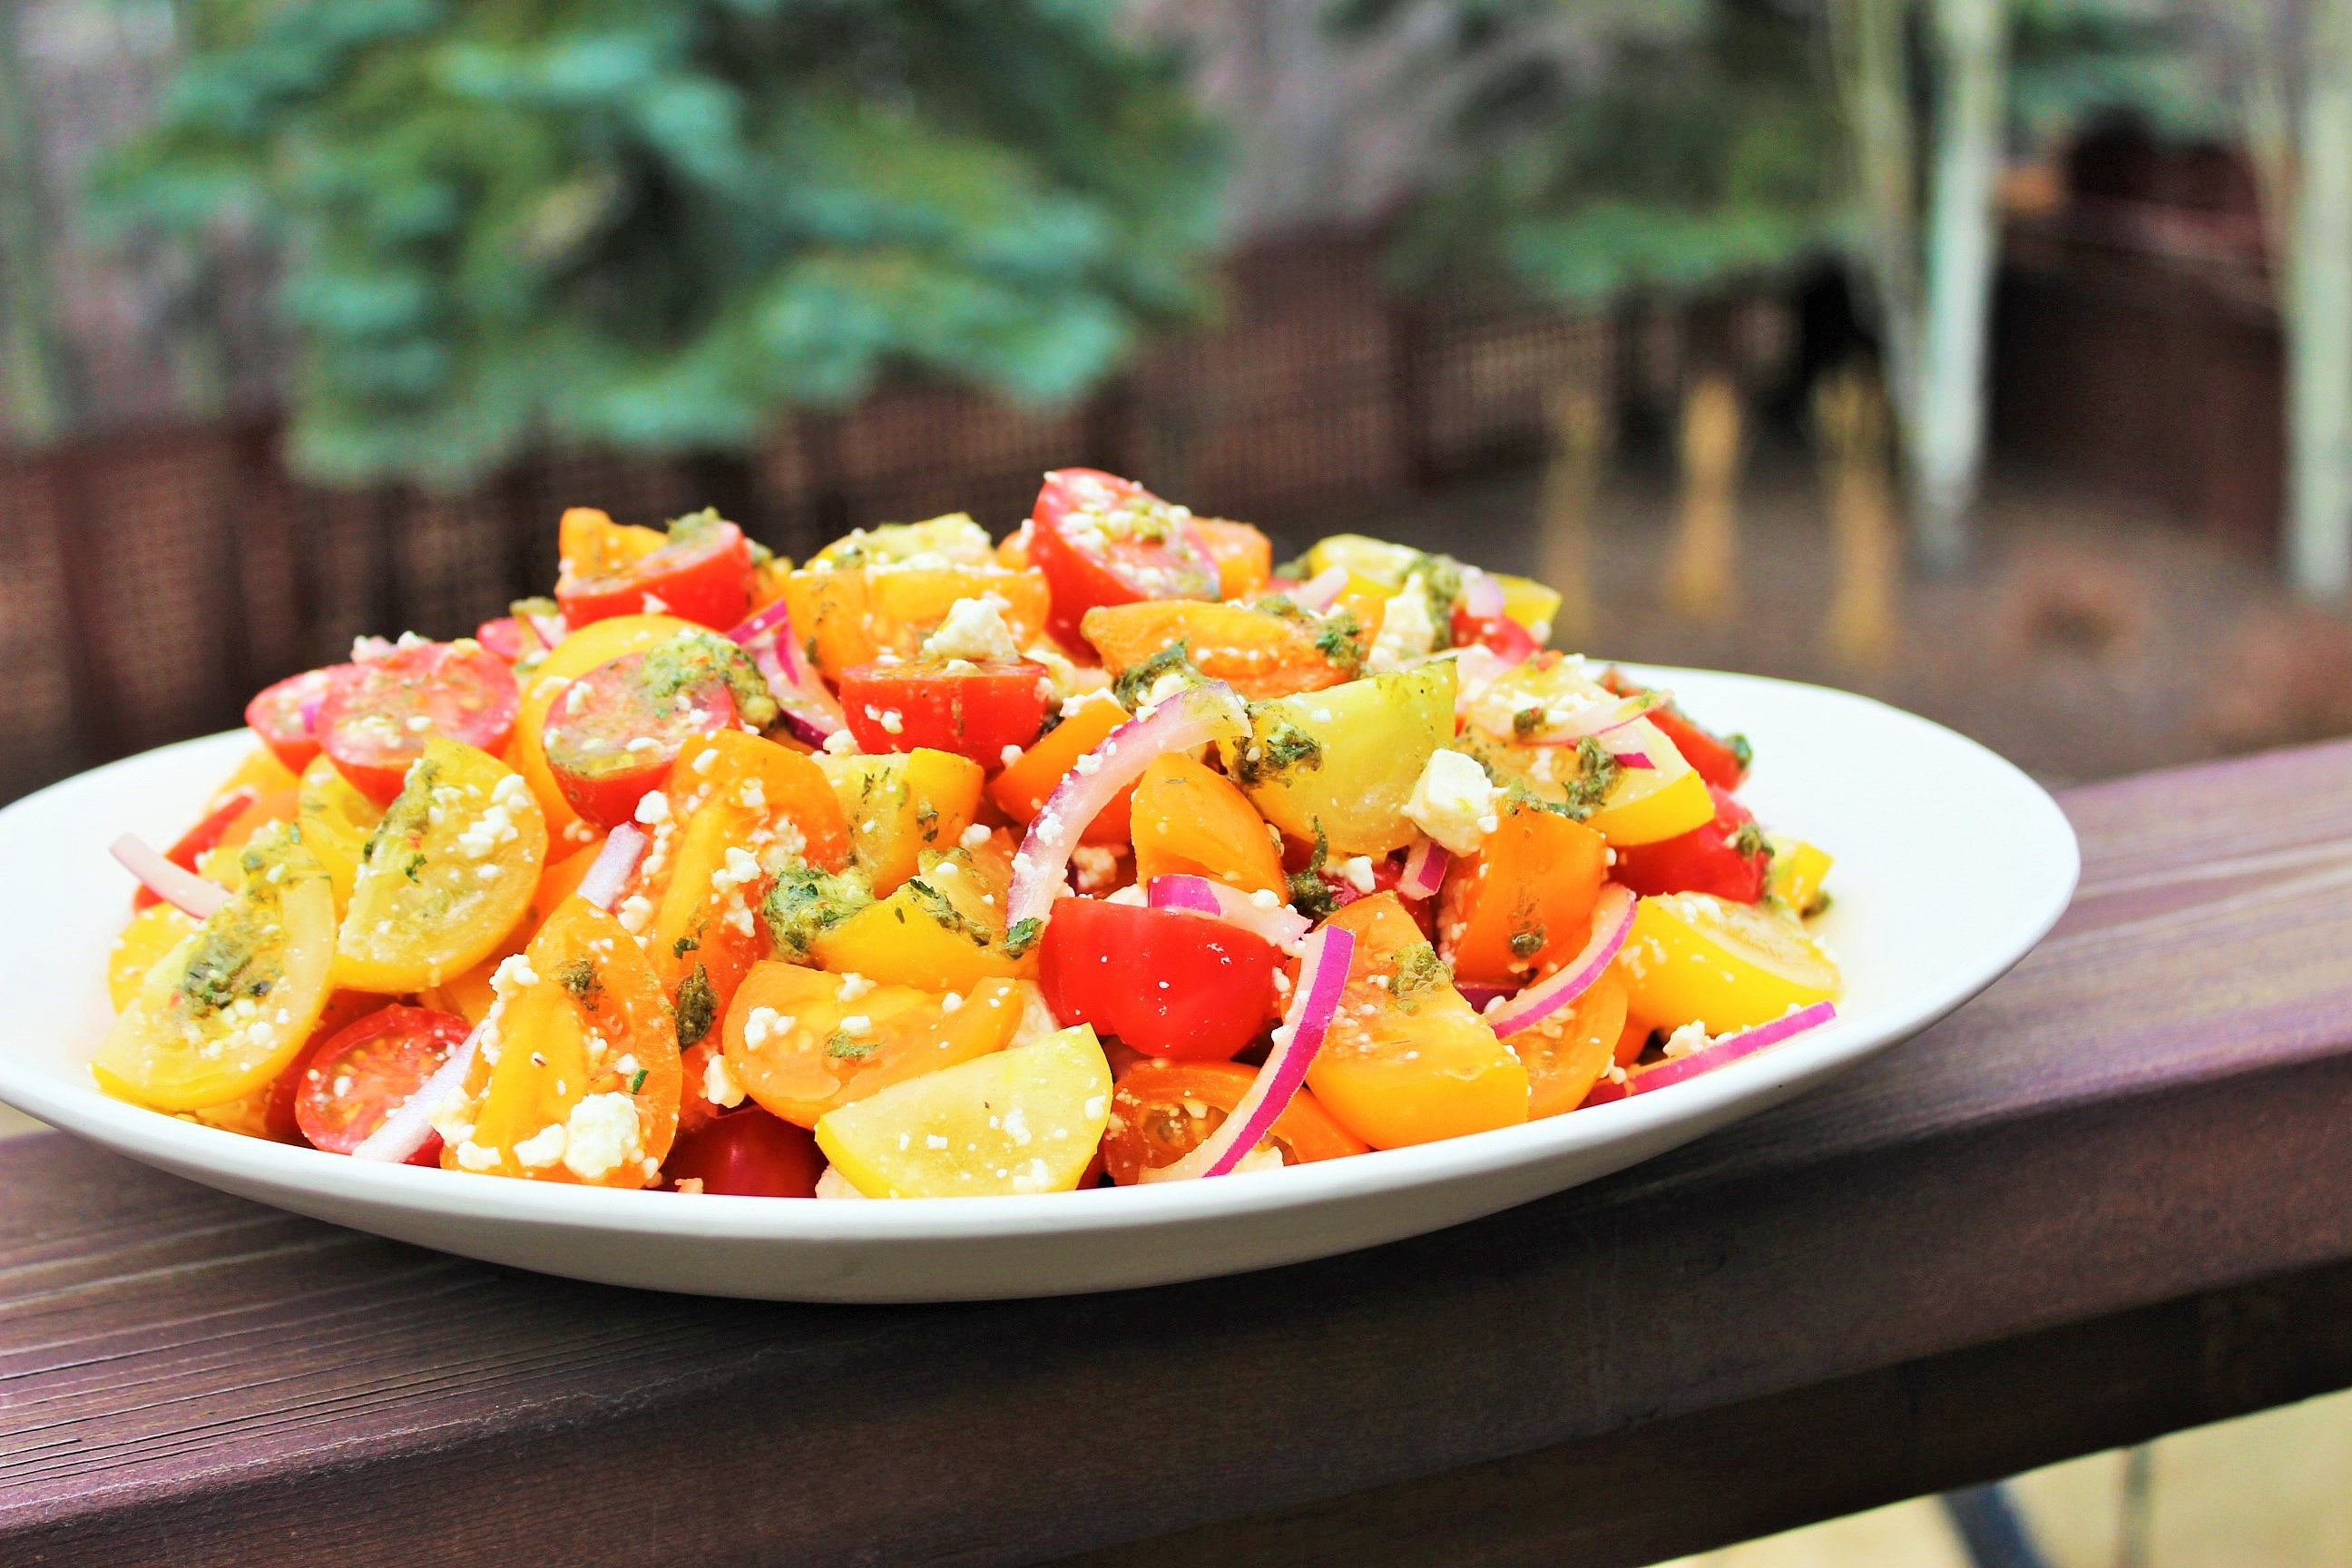 Mixed Tomato Salad with Basil Vinaigrette